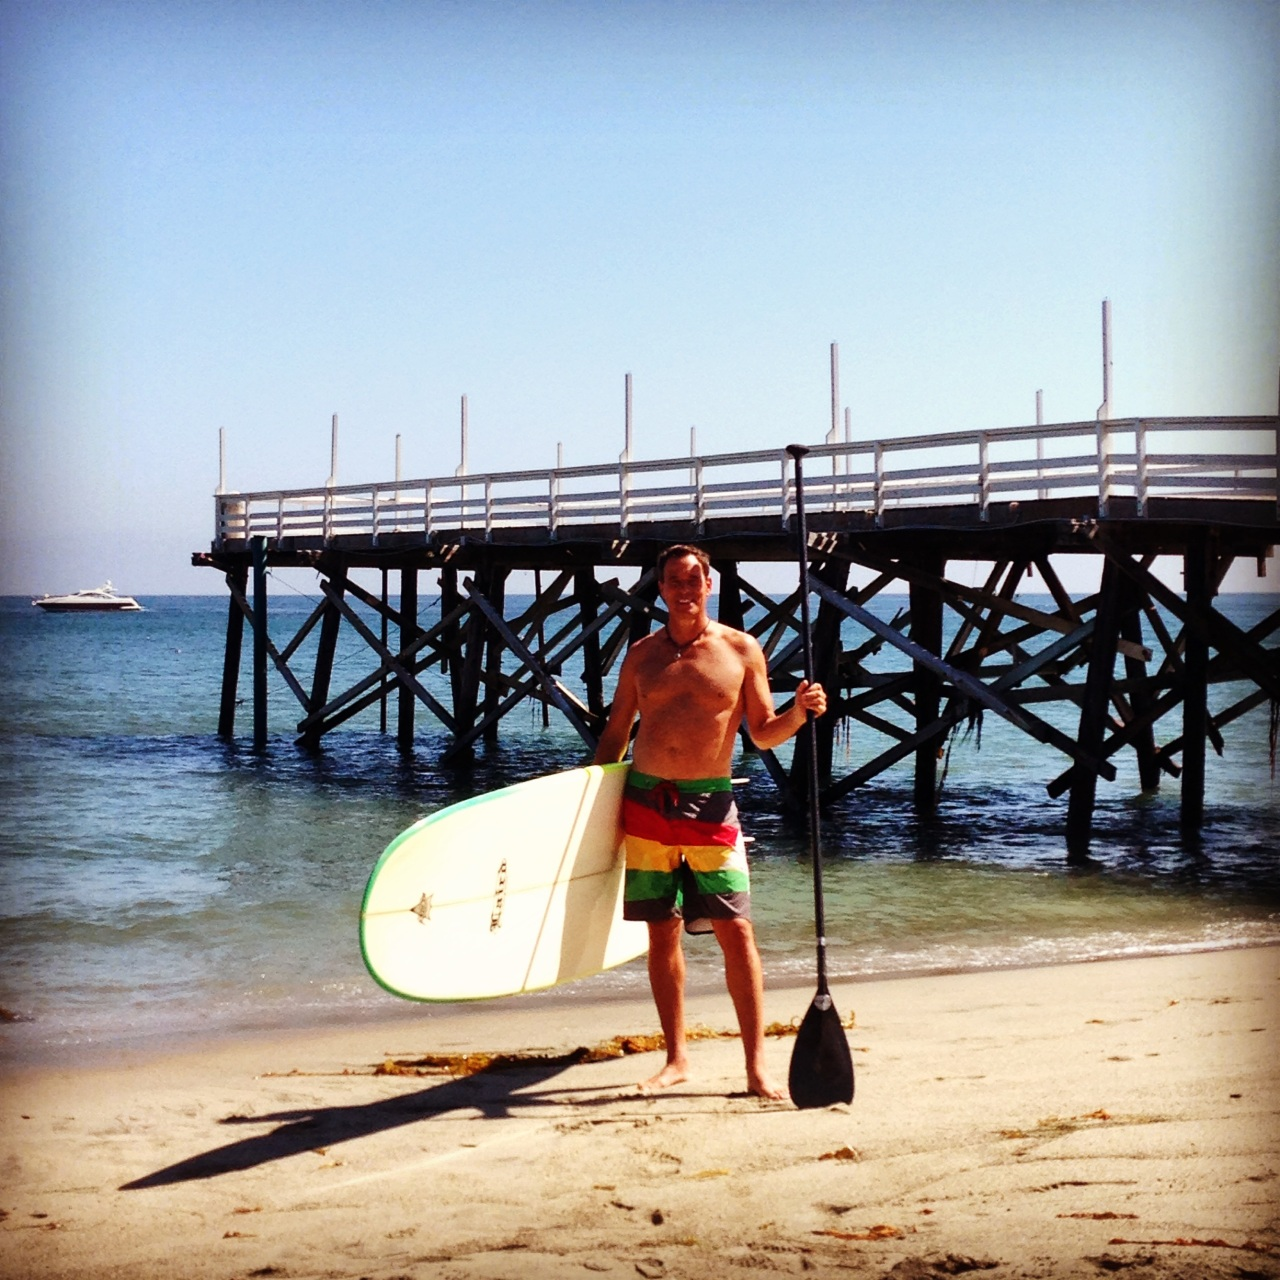 Scott ready to SUP at Paradise Cove, Malibu